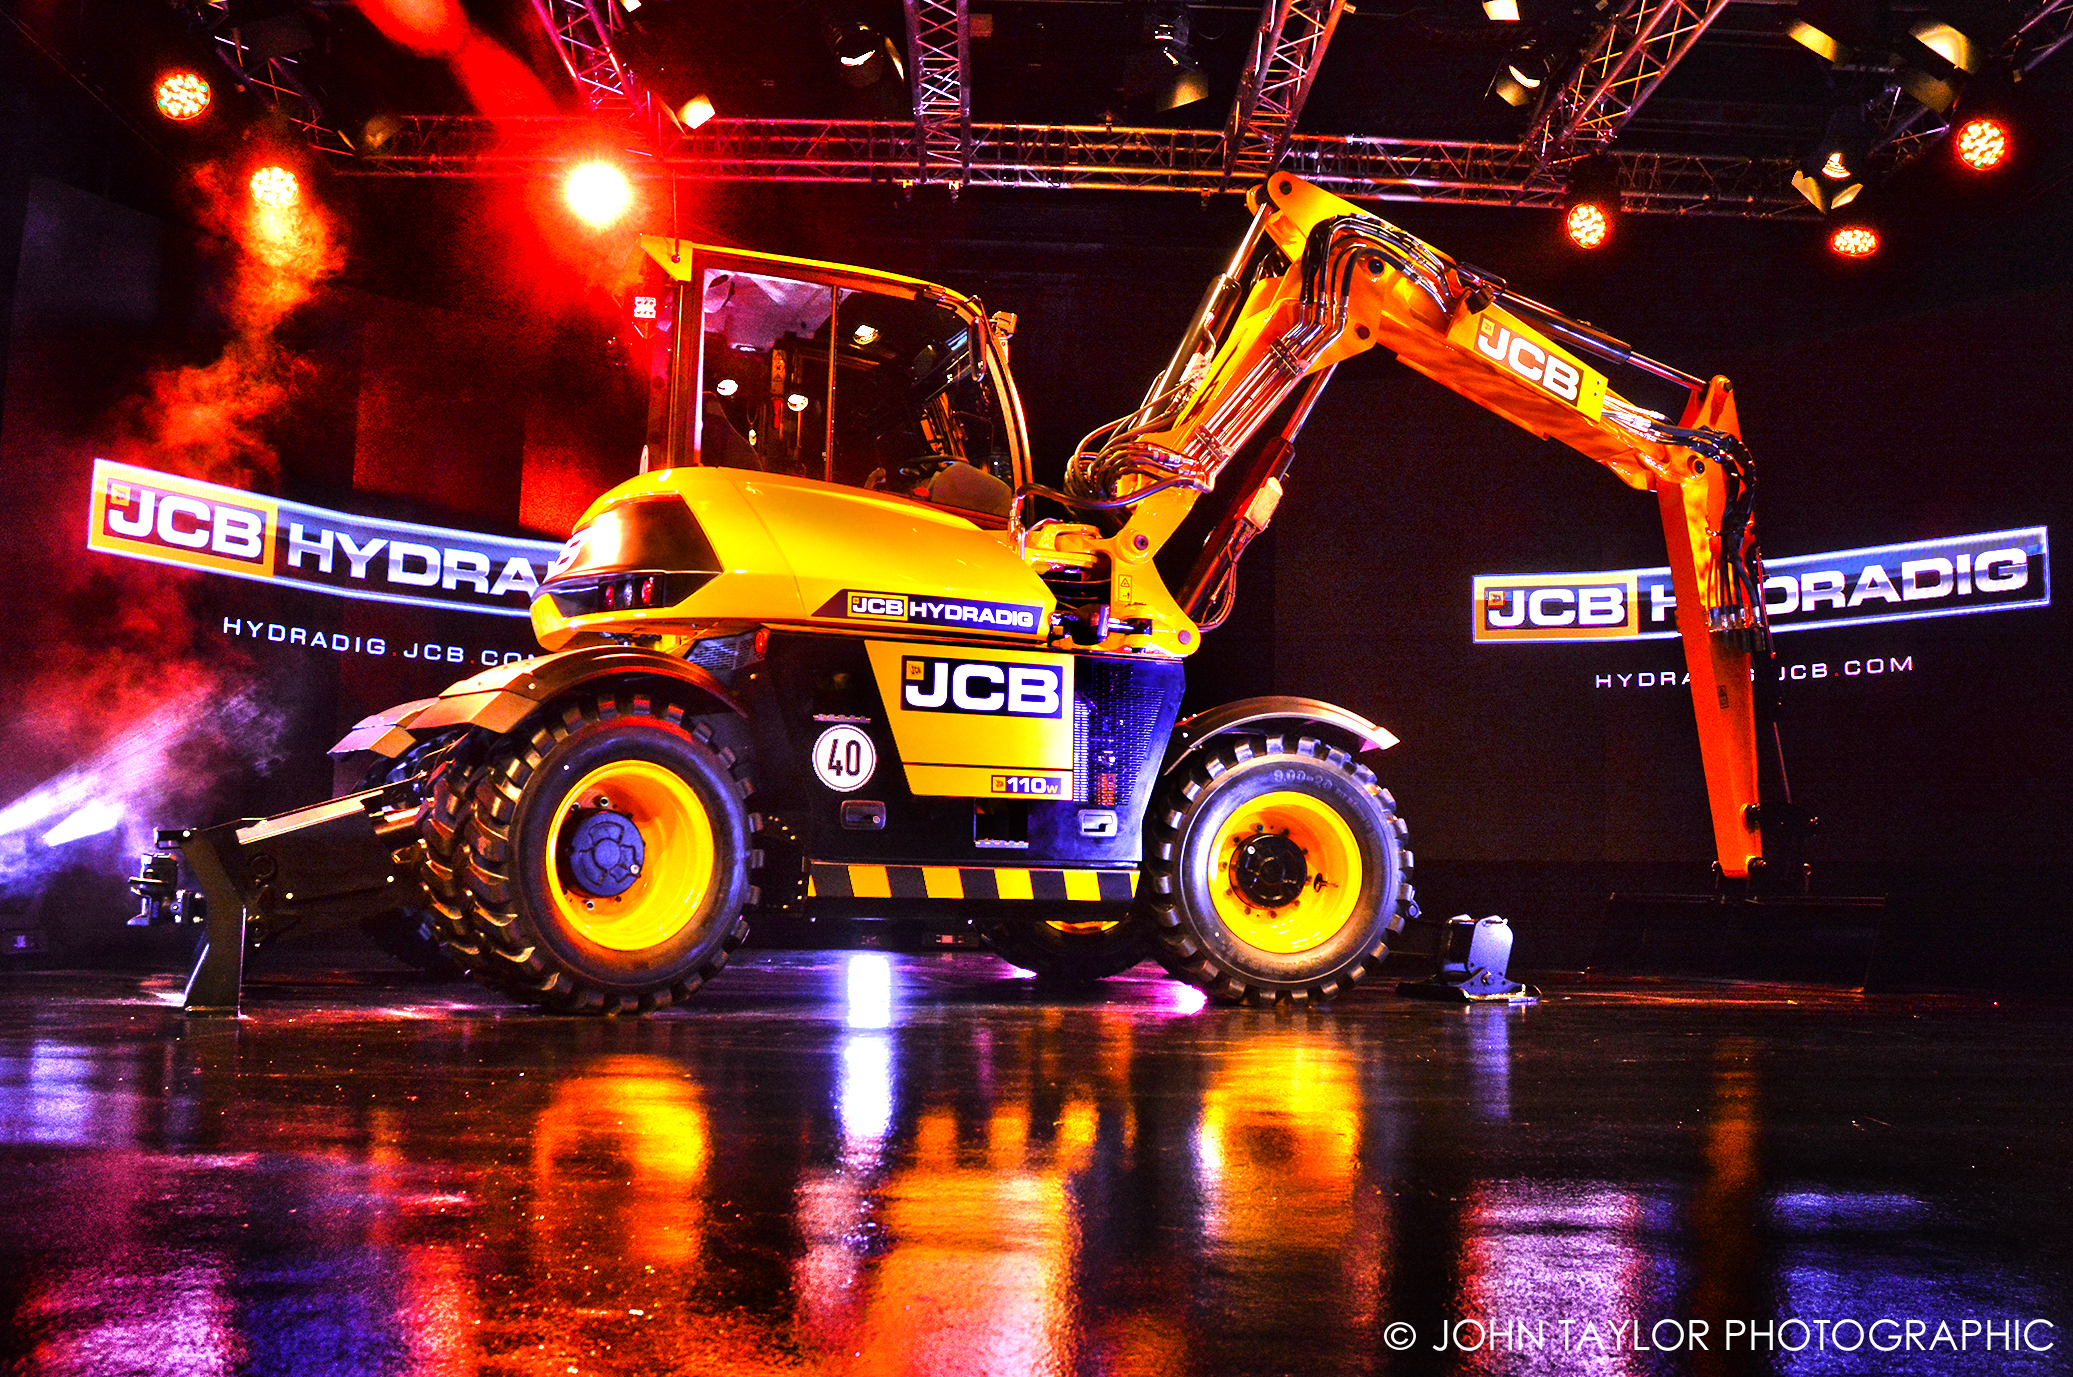 JCB Hydradig launch